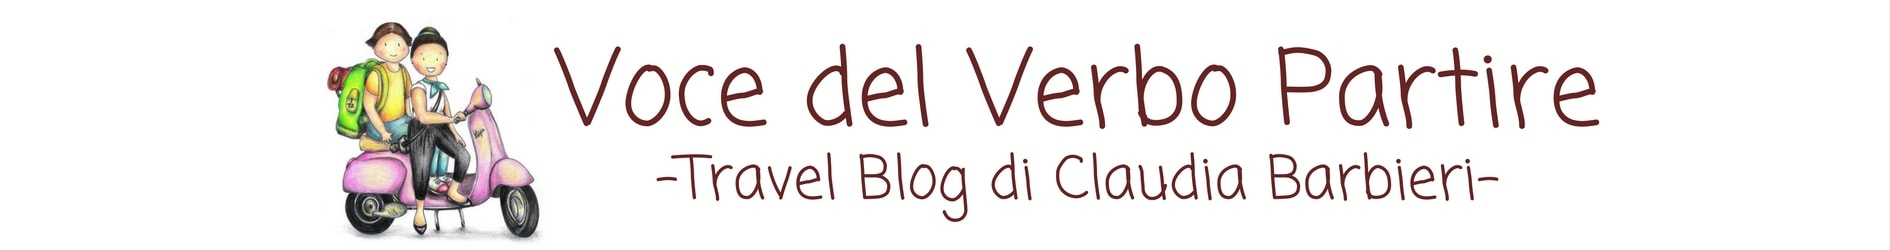 Categoria: About the blog